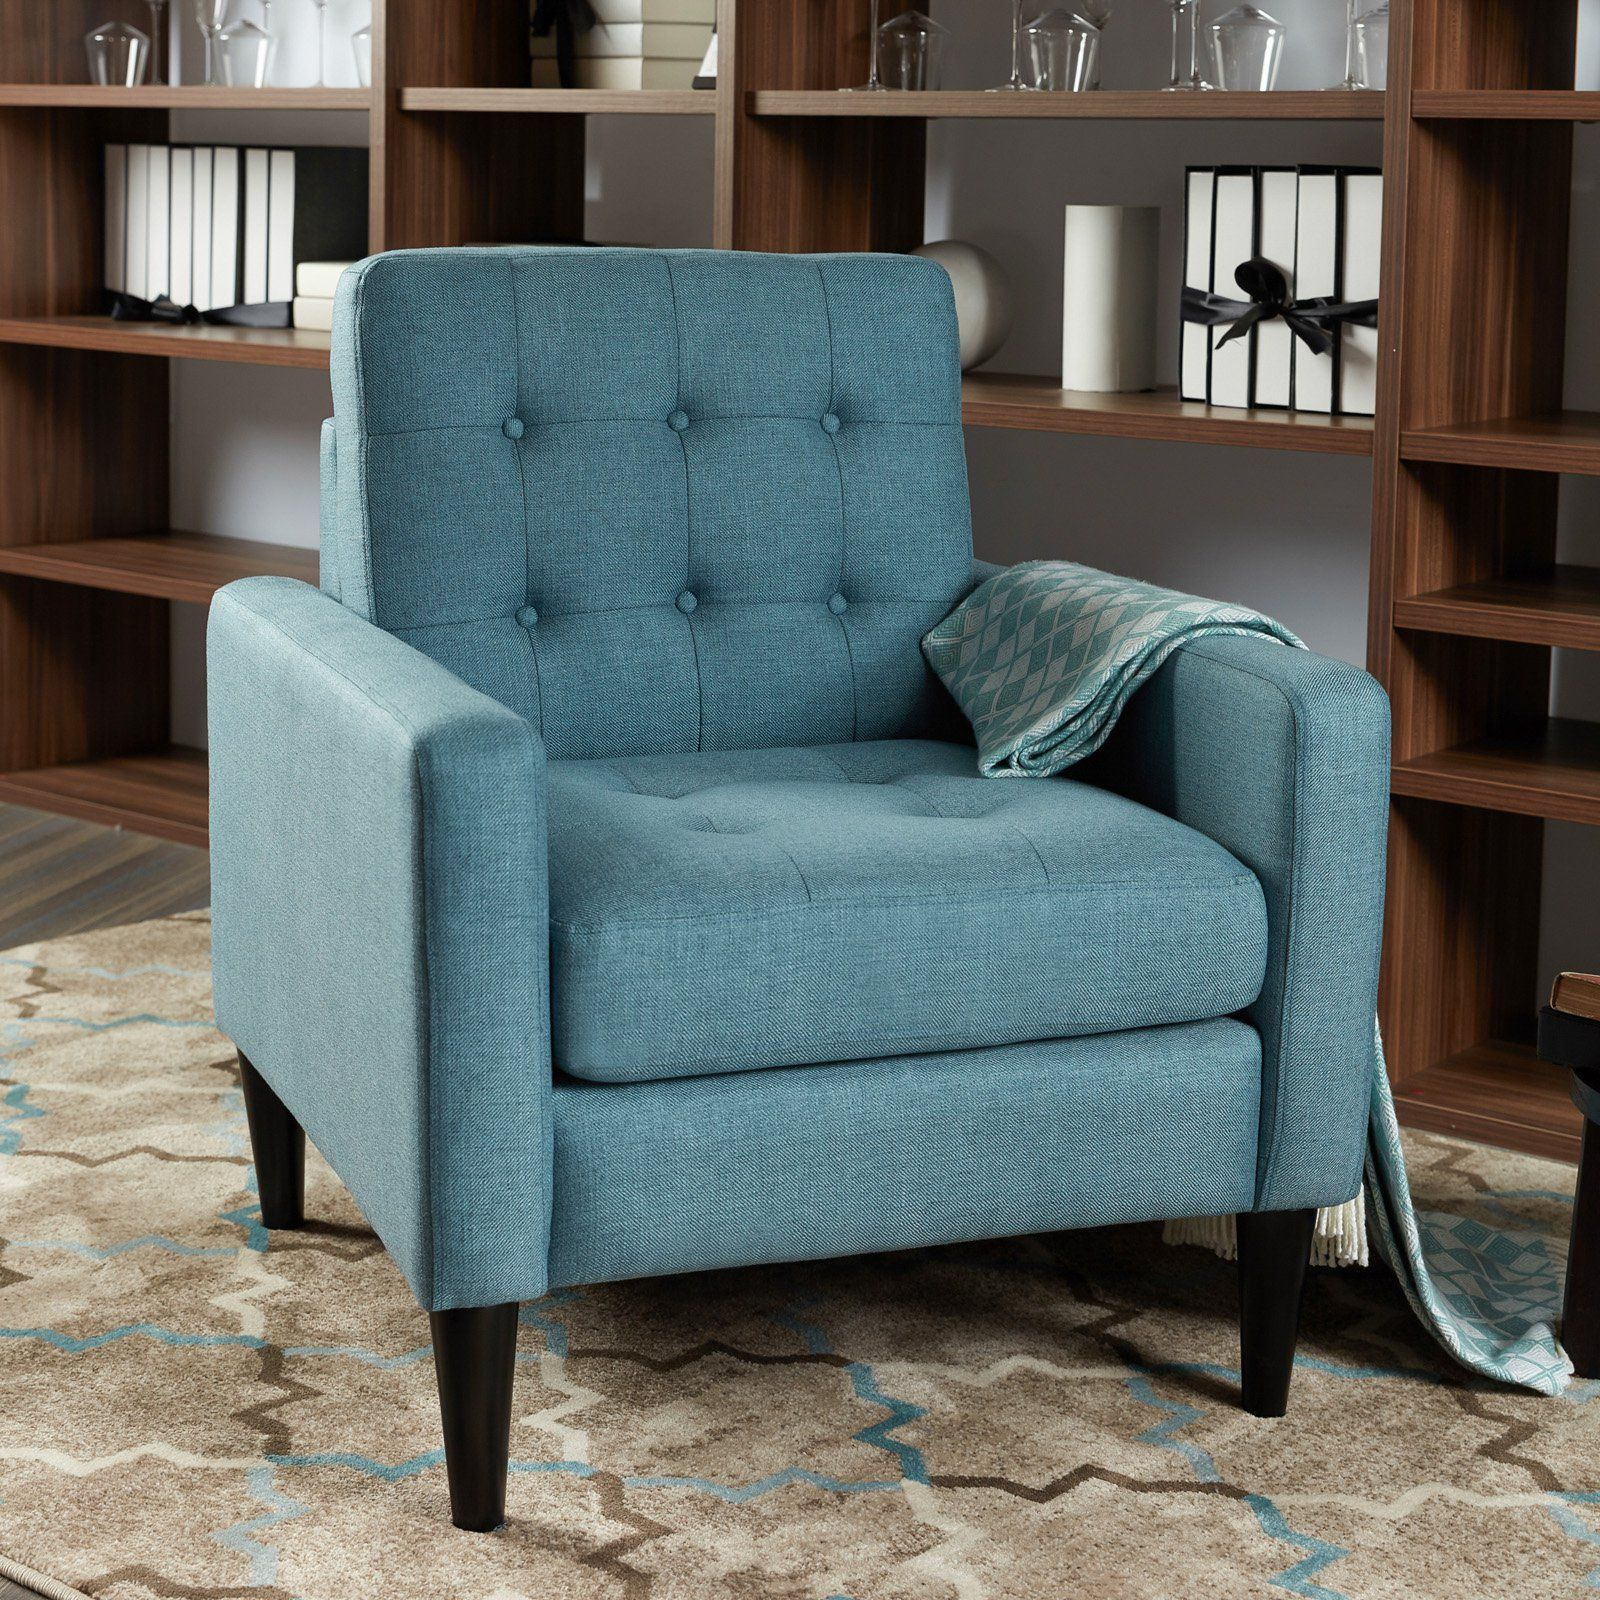 Best Lokatse Oriental Accent Chair Turquoise Blue Upholstery 400 x 300